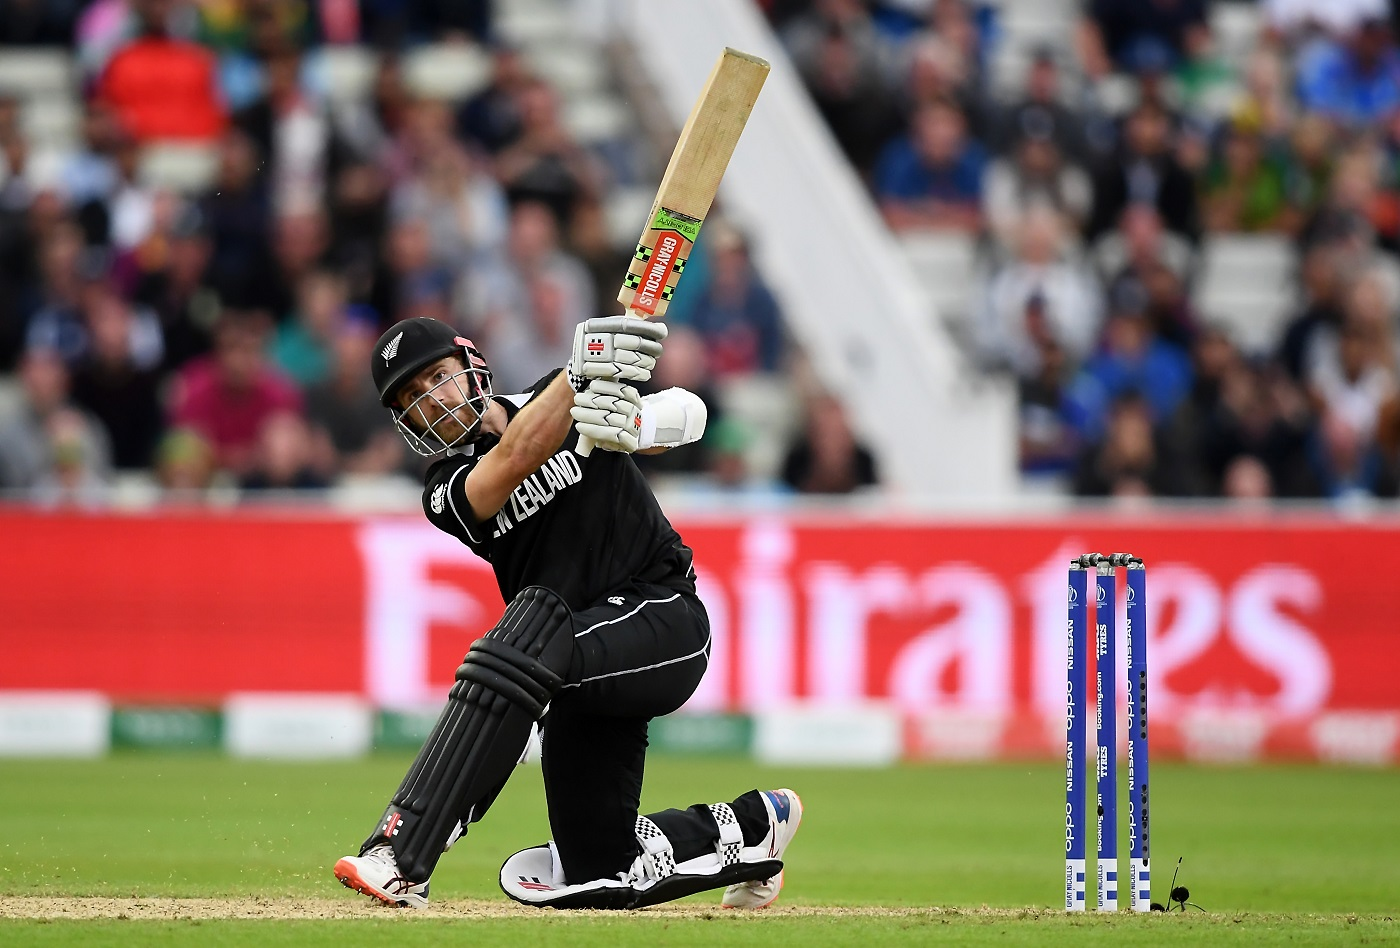 Live Report - New Zealand v South Africa